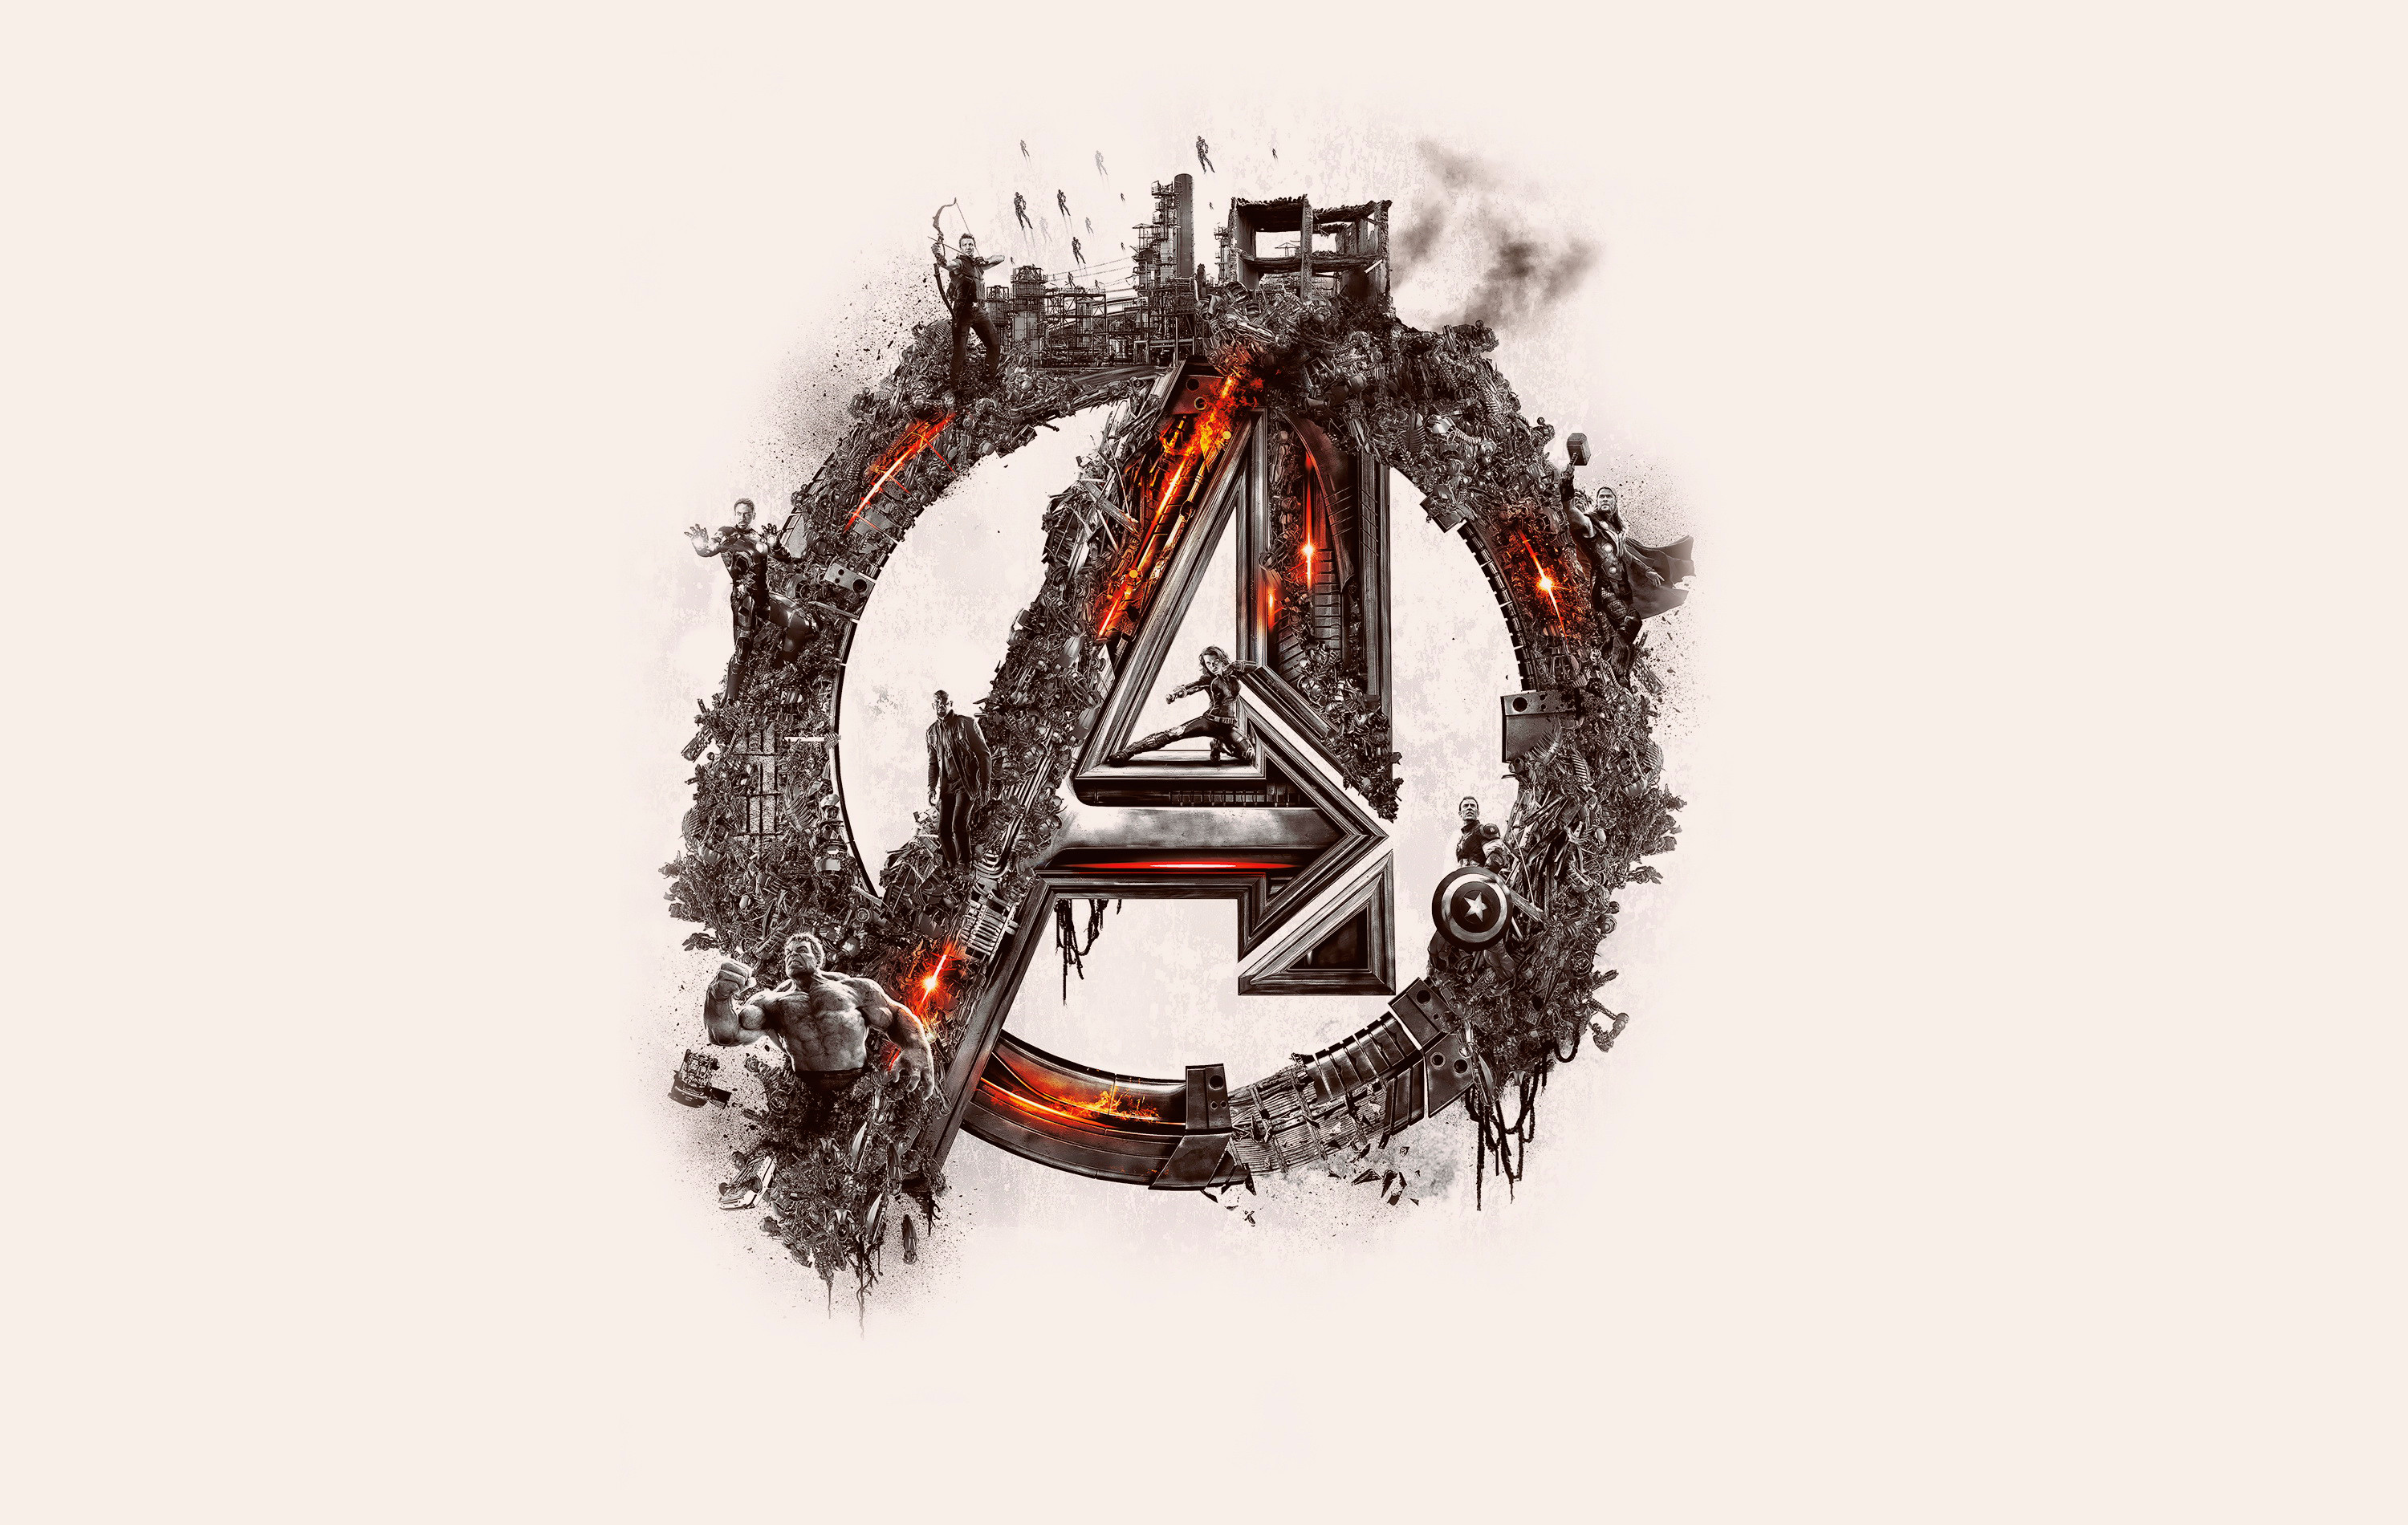 Avengers age of ultron wallpapers.